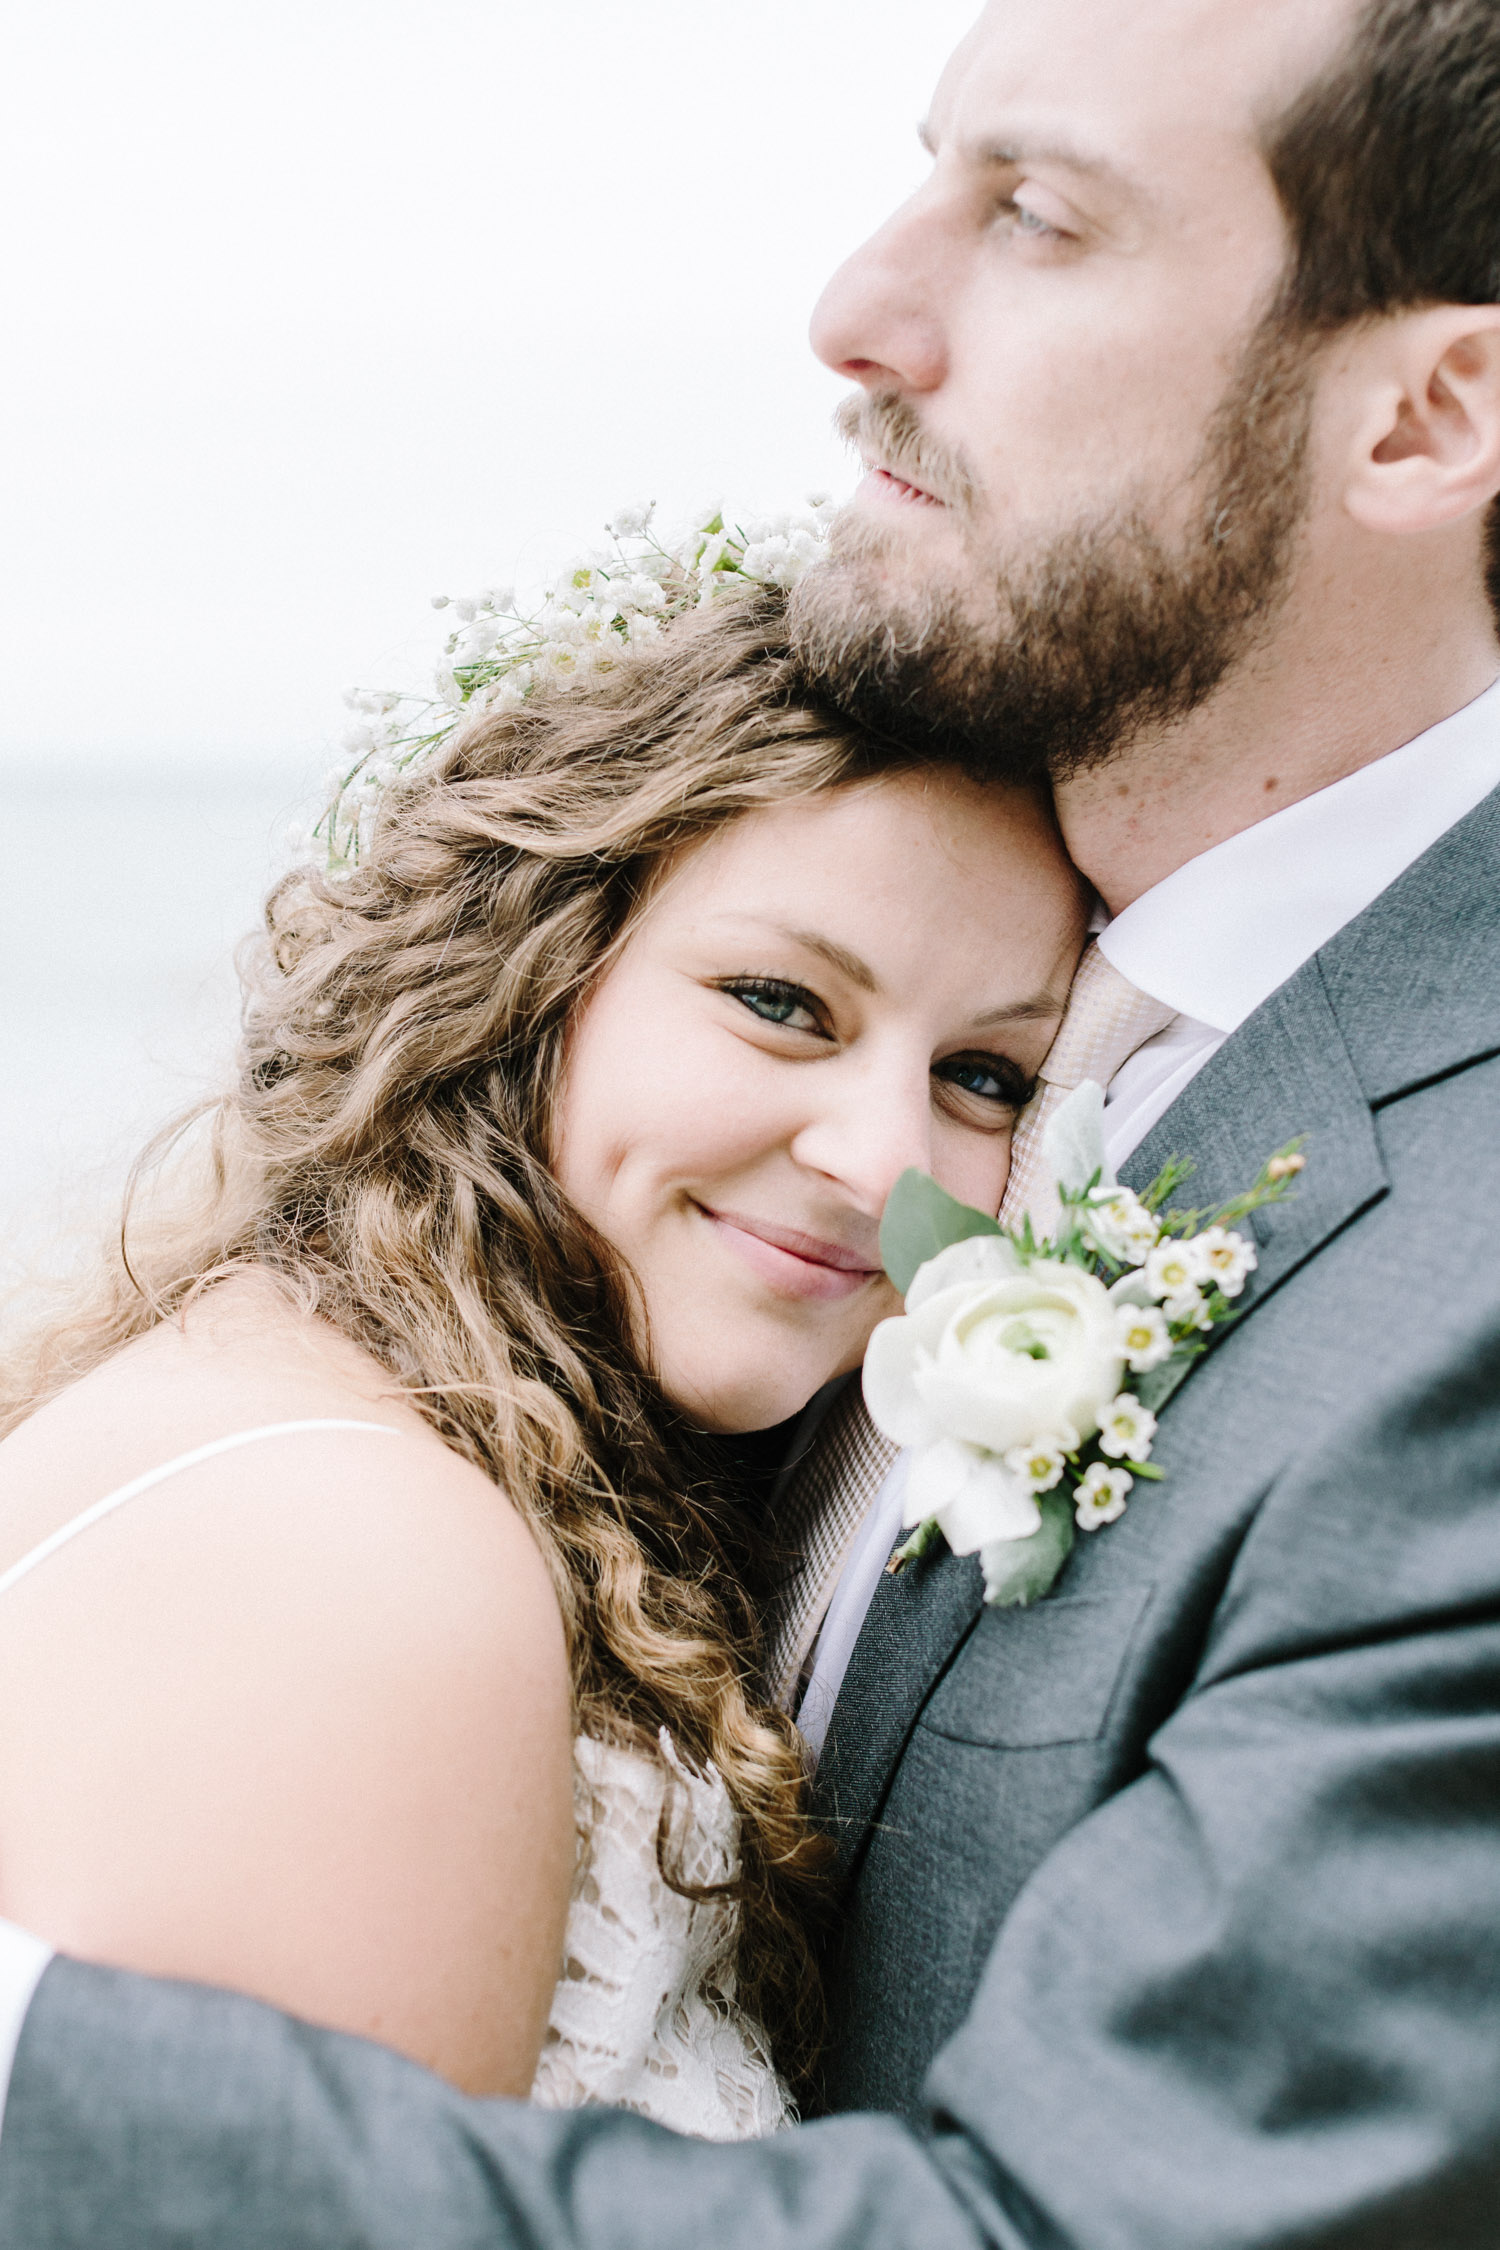 A curly haired bride smiles with her head on her groom's chest as they explore a Lake Michigan beach after their small West Michigan wedding ceremony